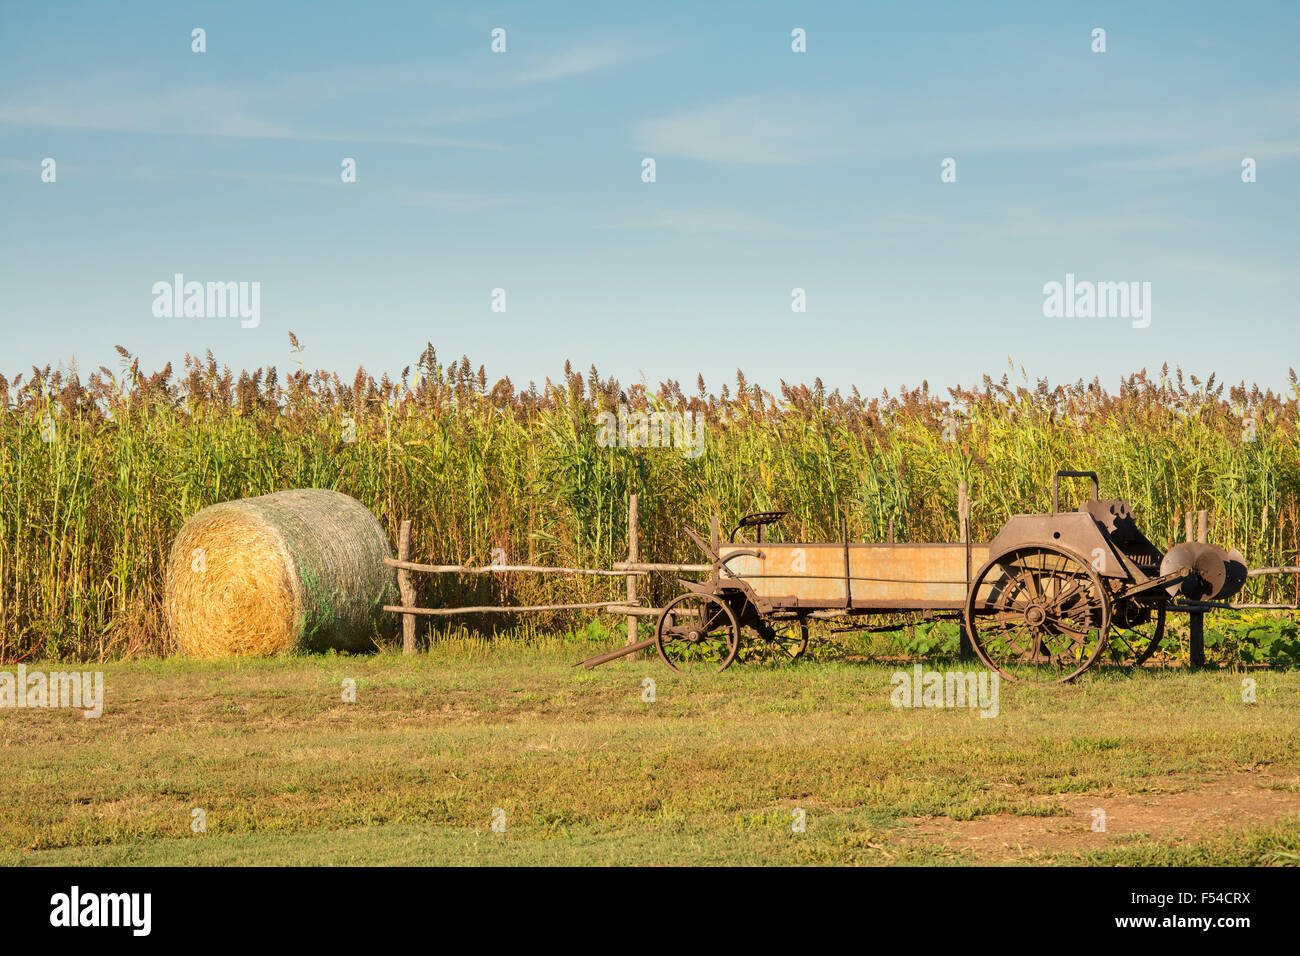 An antique manure spreader and a round bale of hay in front of a sorghum field - an agricultural background - Stock Image